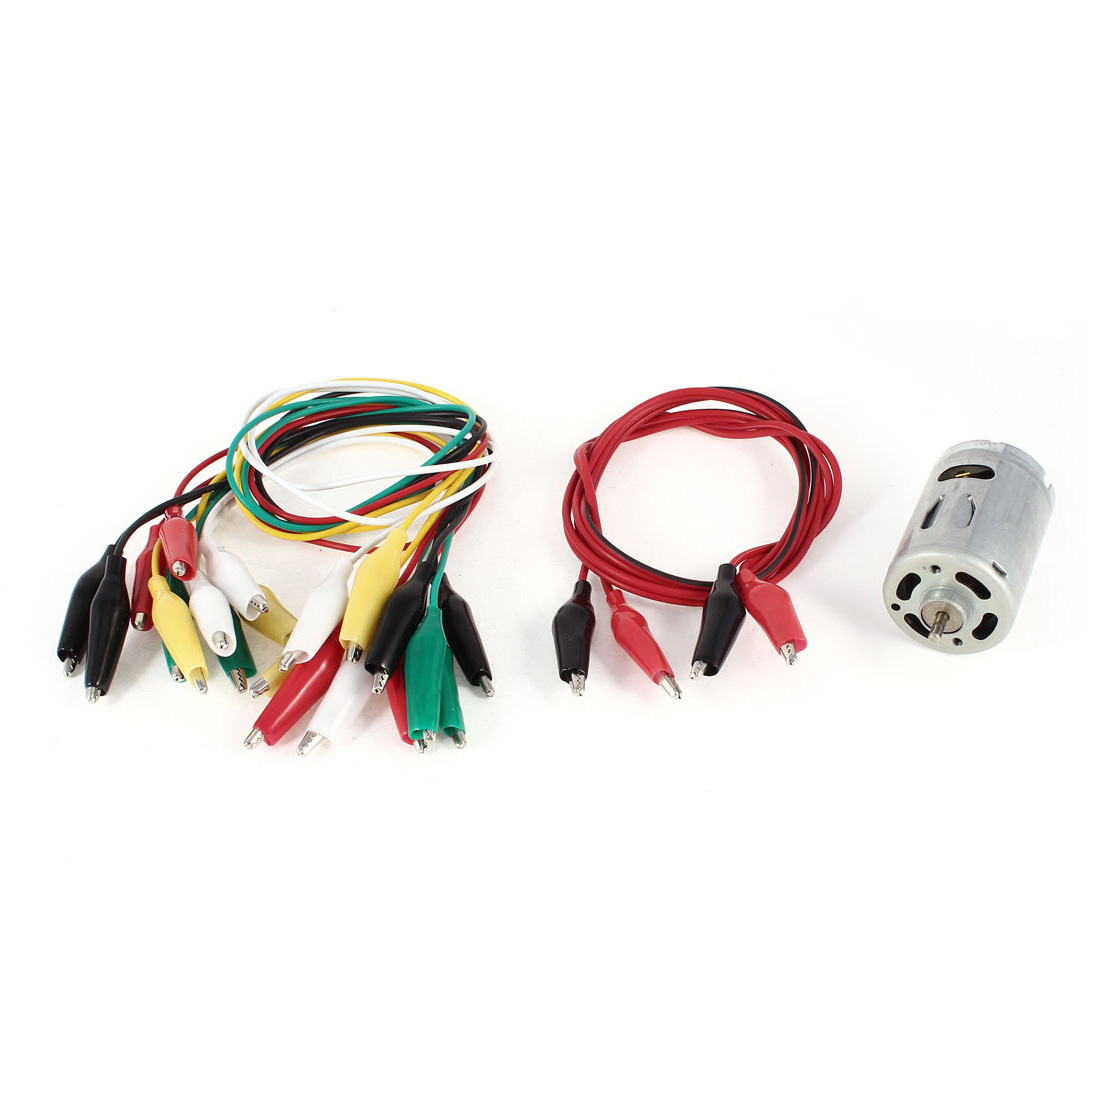 11 Pcs Single/Dual Double-ended Wire Test Leads Alligator Clips Jumper + RS-540SH Motor DC 6-12V